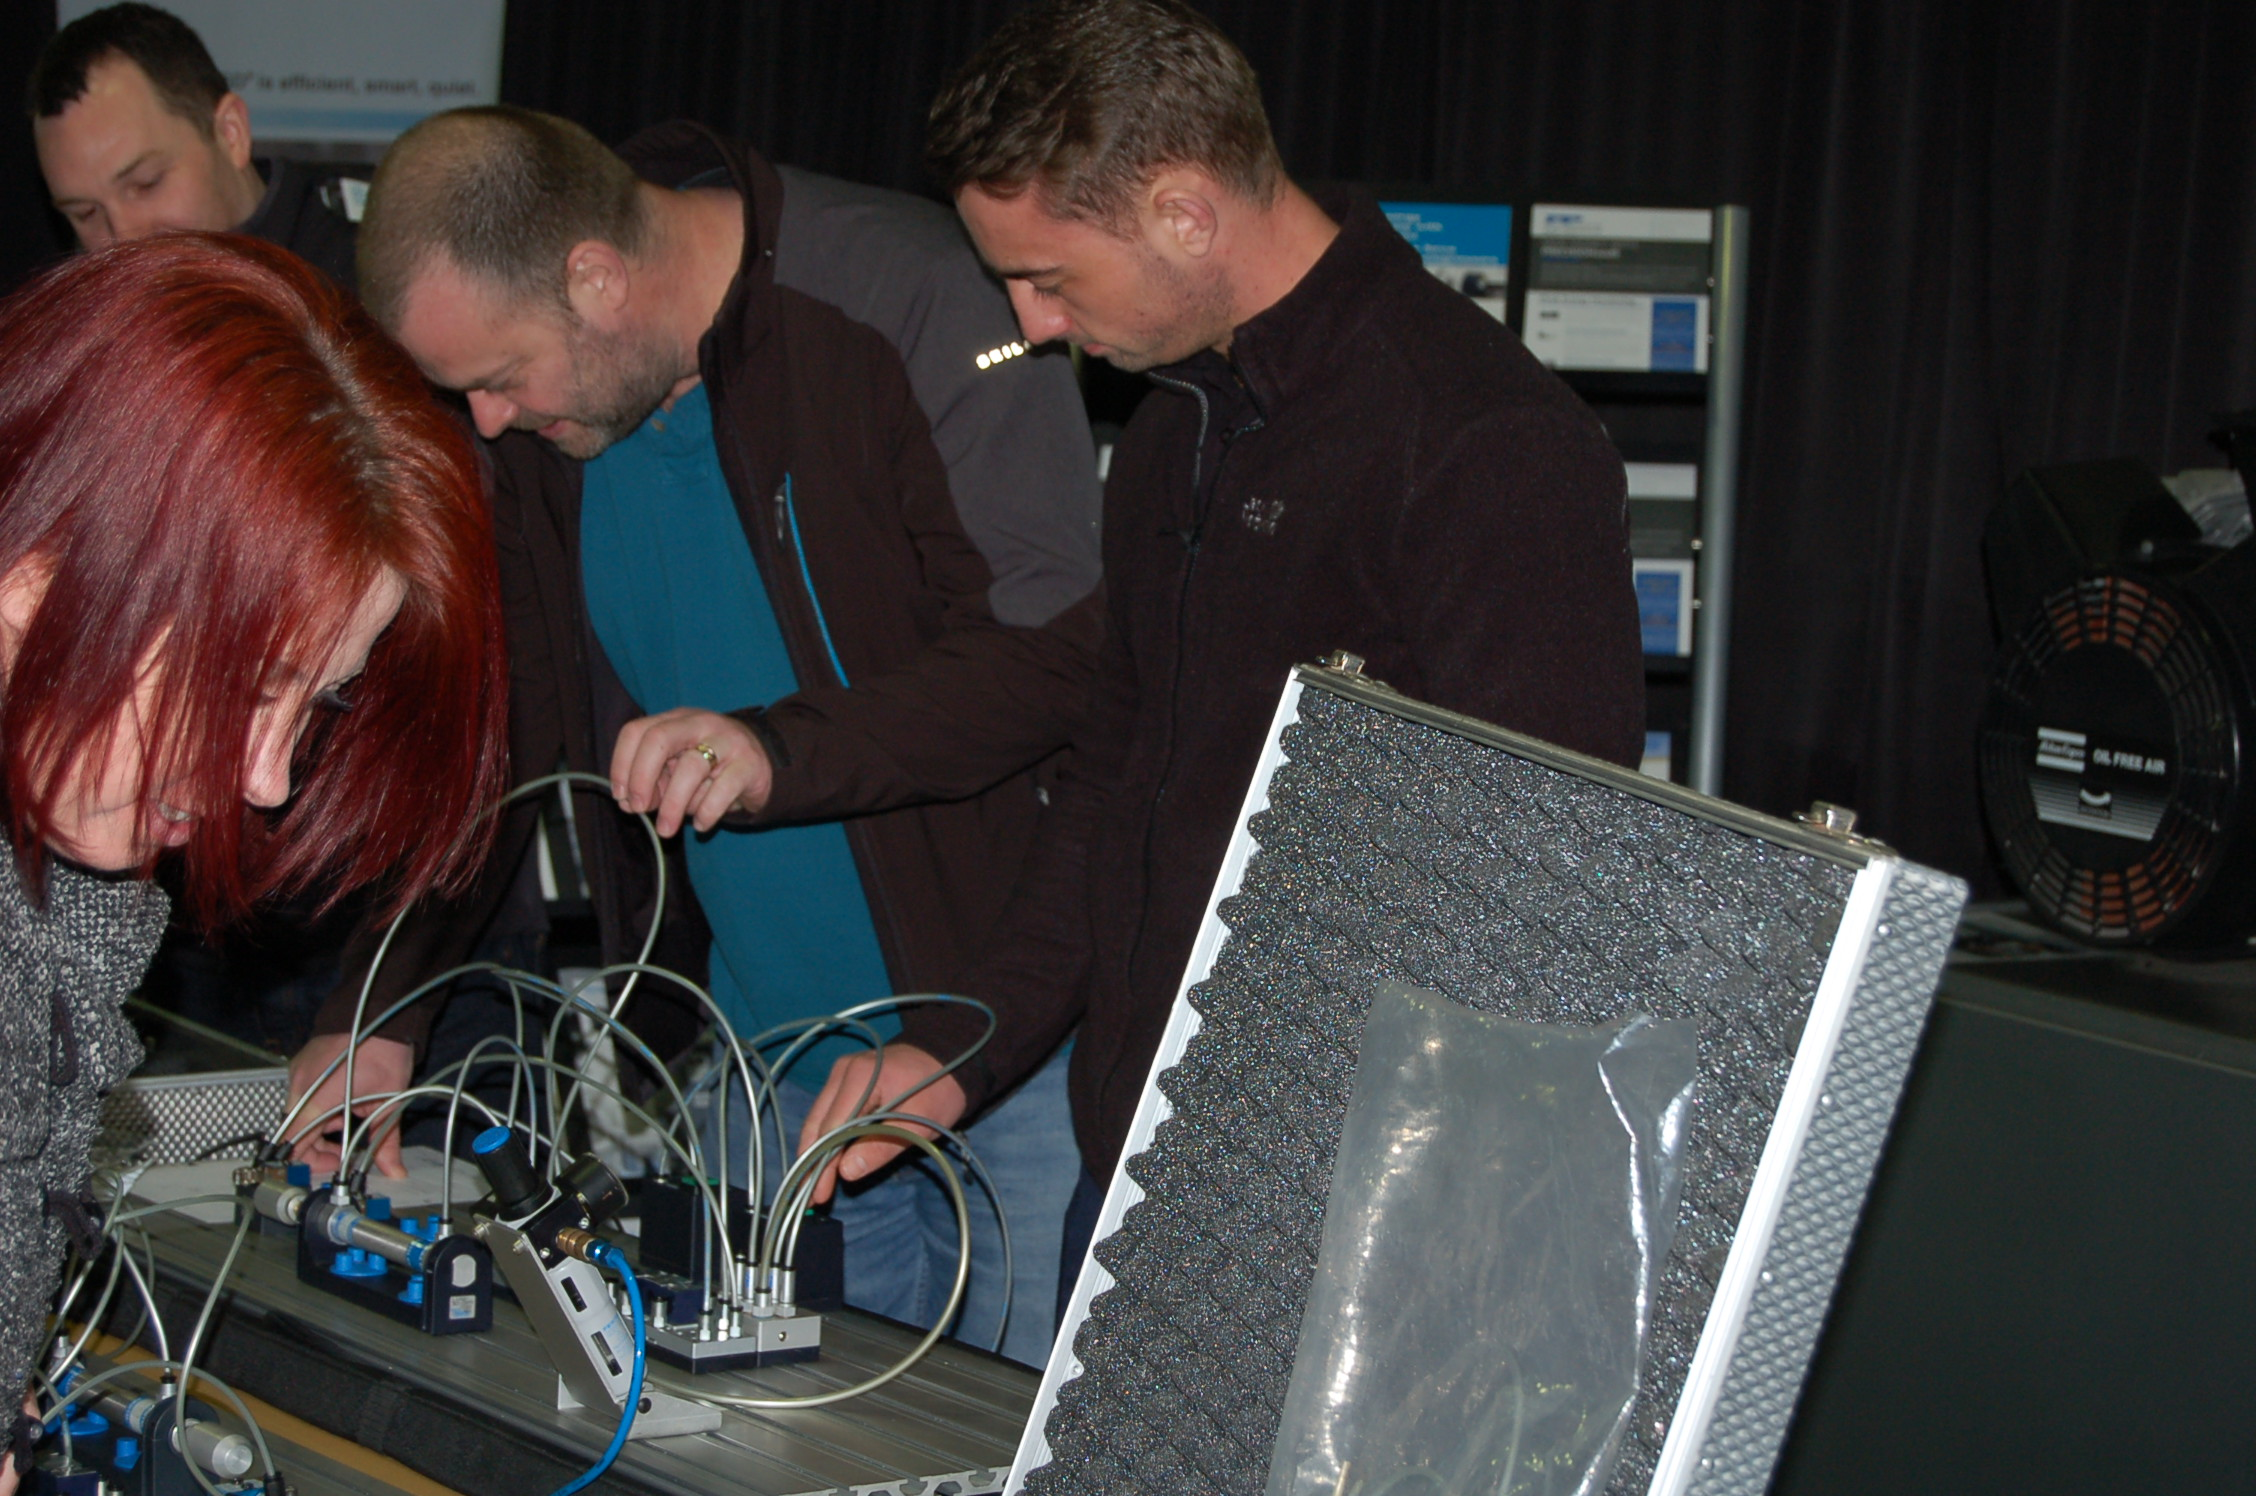 Fundamentals in Pneumatics course returns to Knowsley